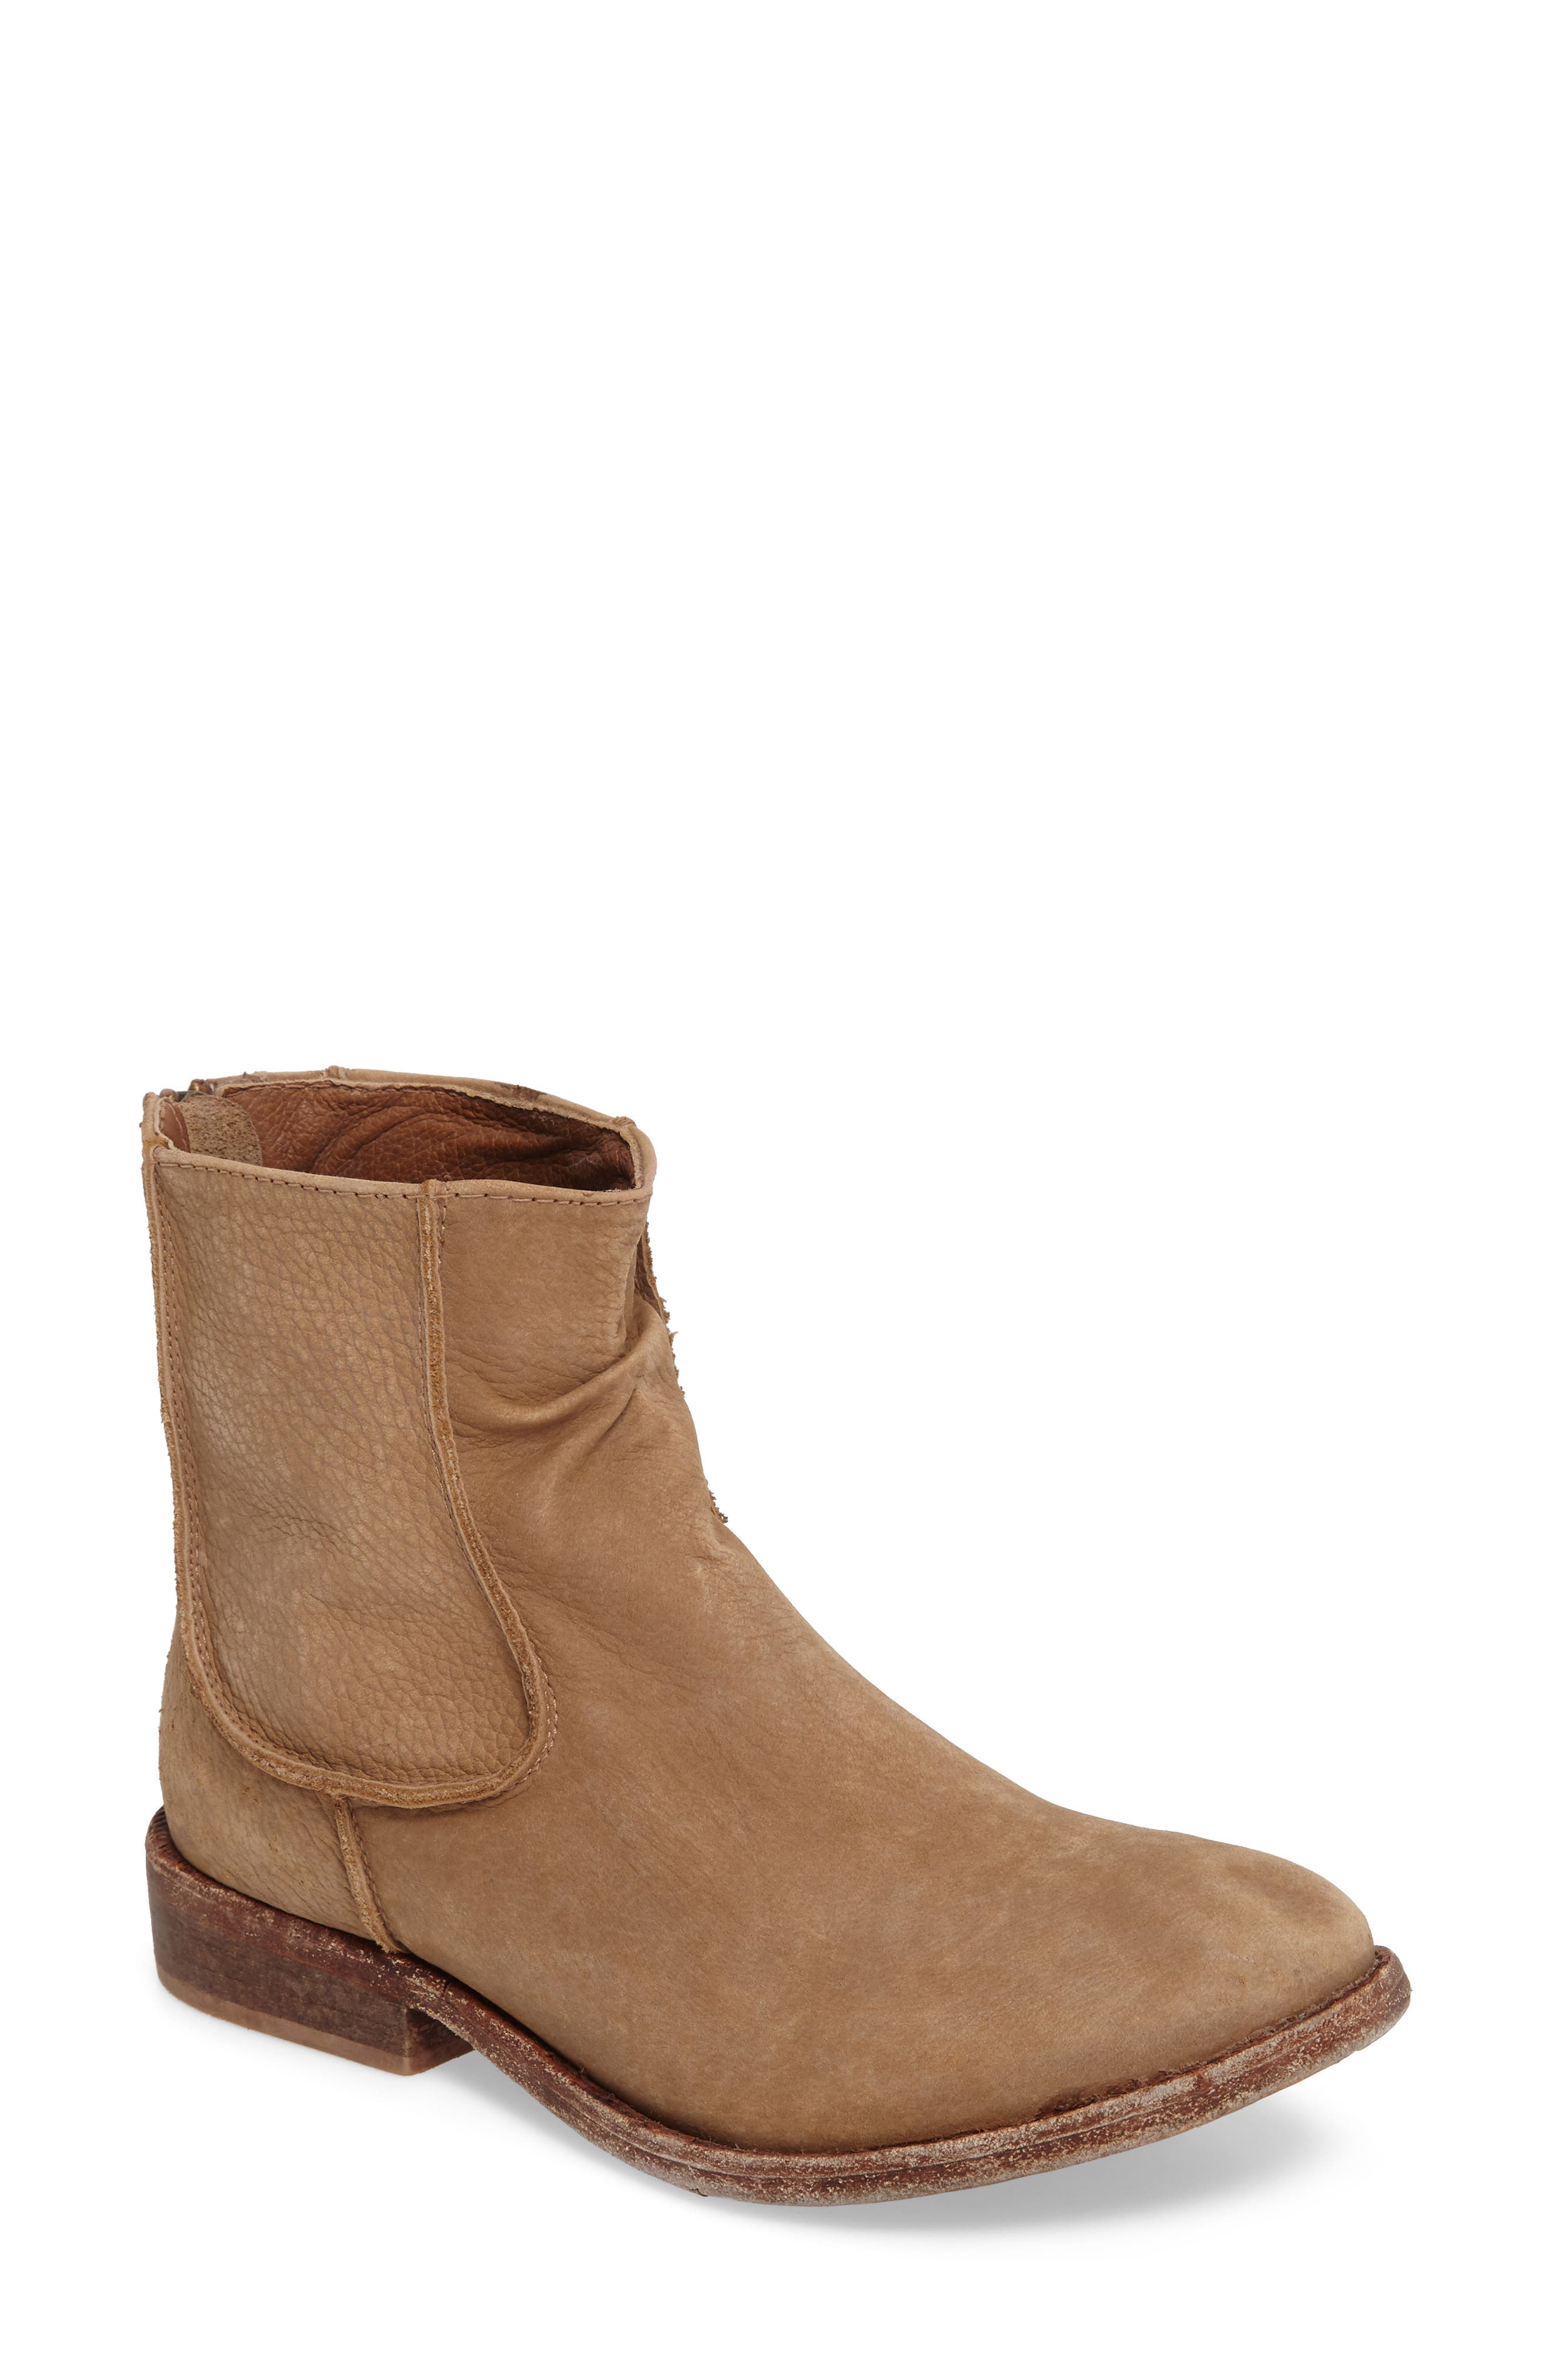 'Gerald' Distressed Bootie,                         Main,                         color, Natural Leather